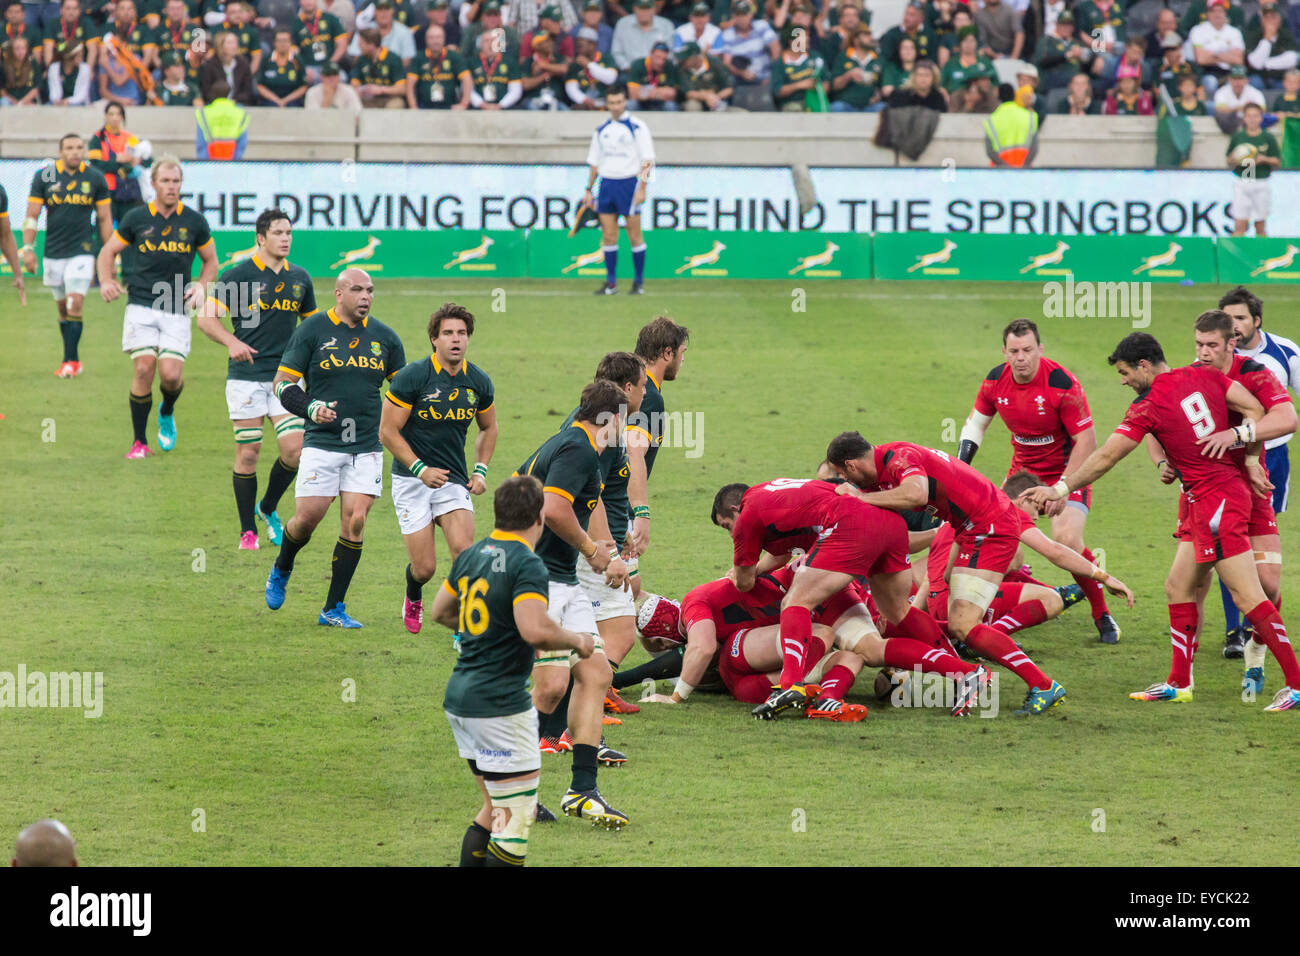 The Springboks and Welsh players contest the ball  during the 2nd test match between South Africa and Wales - Stock Image